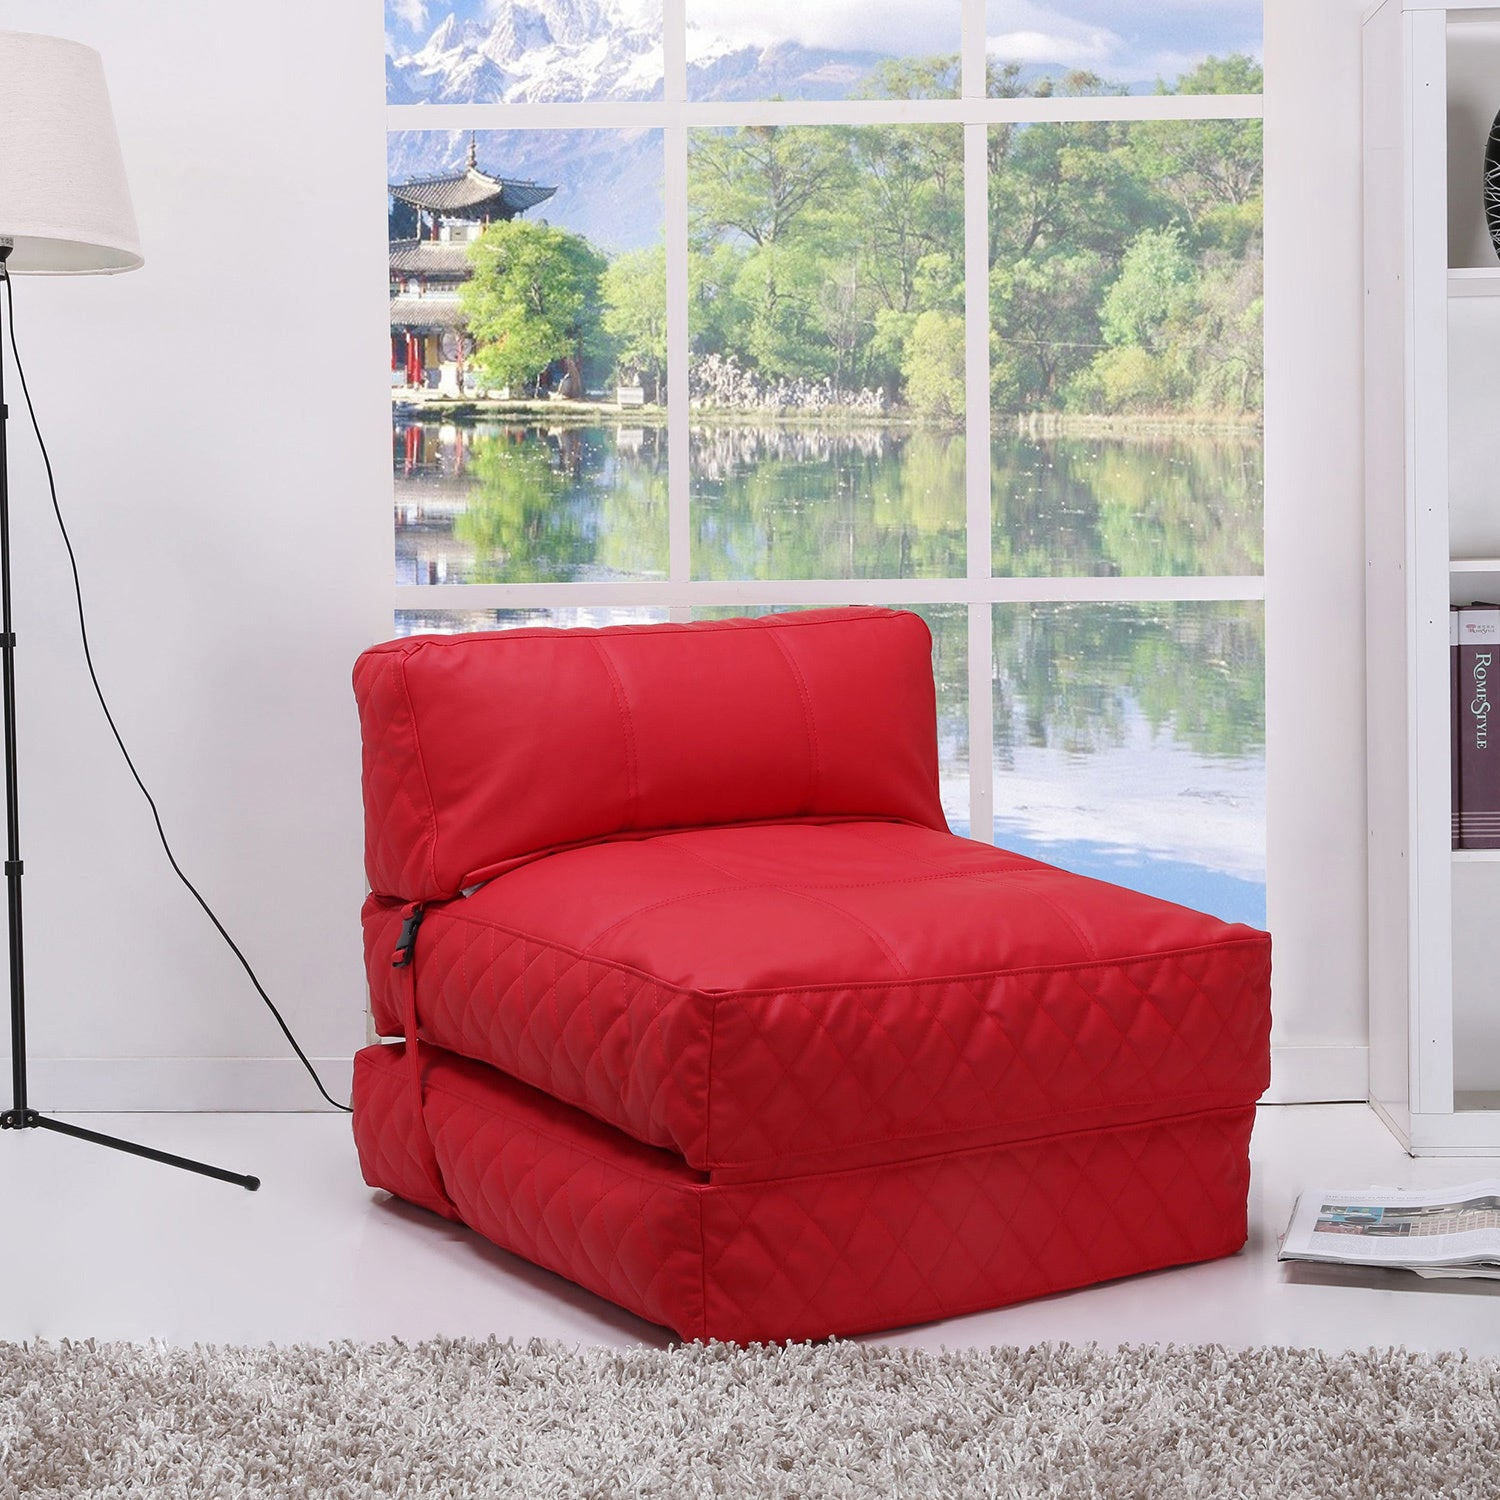 austin red bean bag chair bed overstock shopping big discounts on bean lounge bags. Black Bedroom Furniture Sets. Home Design Ideas